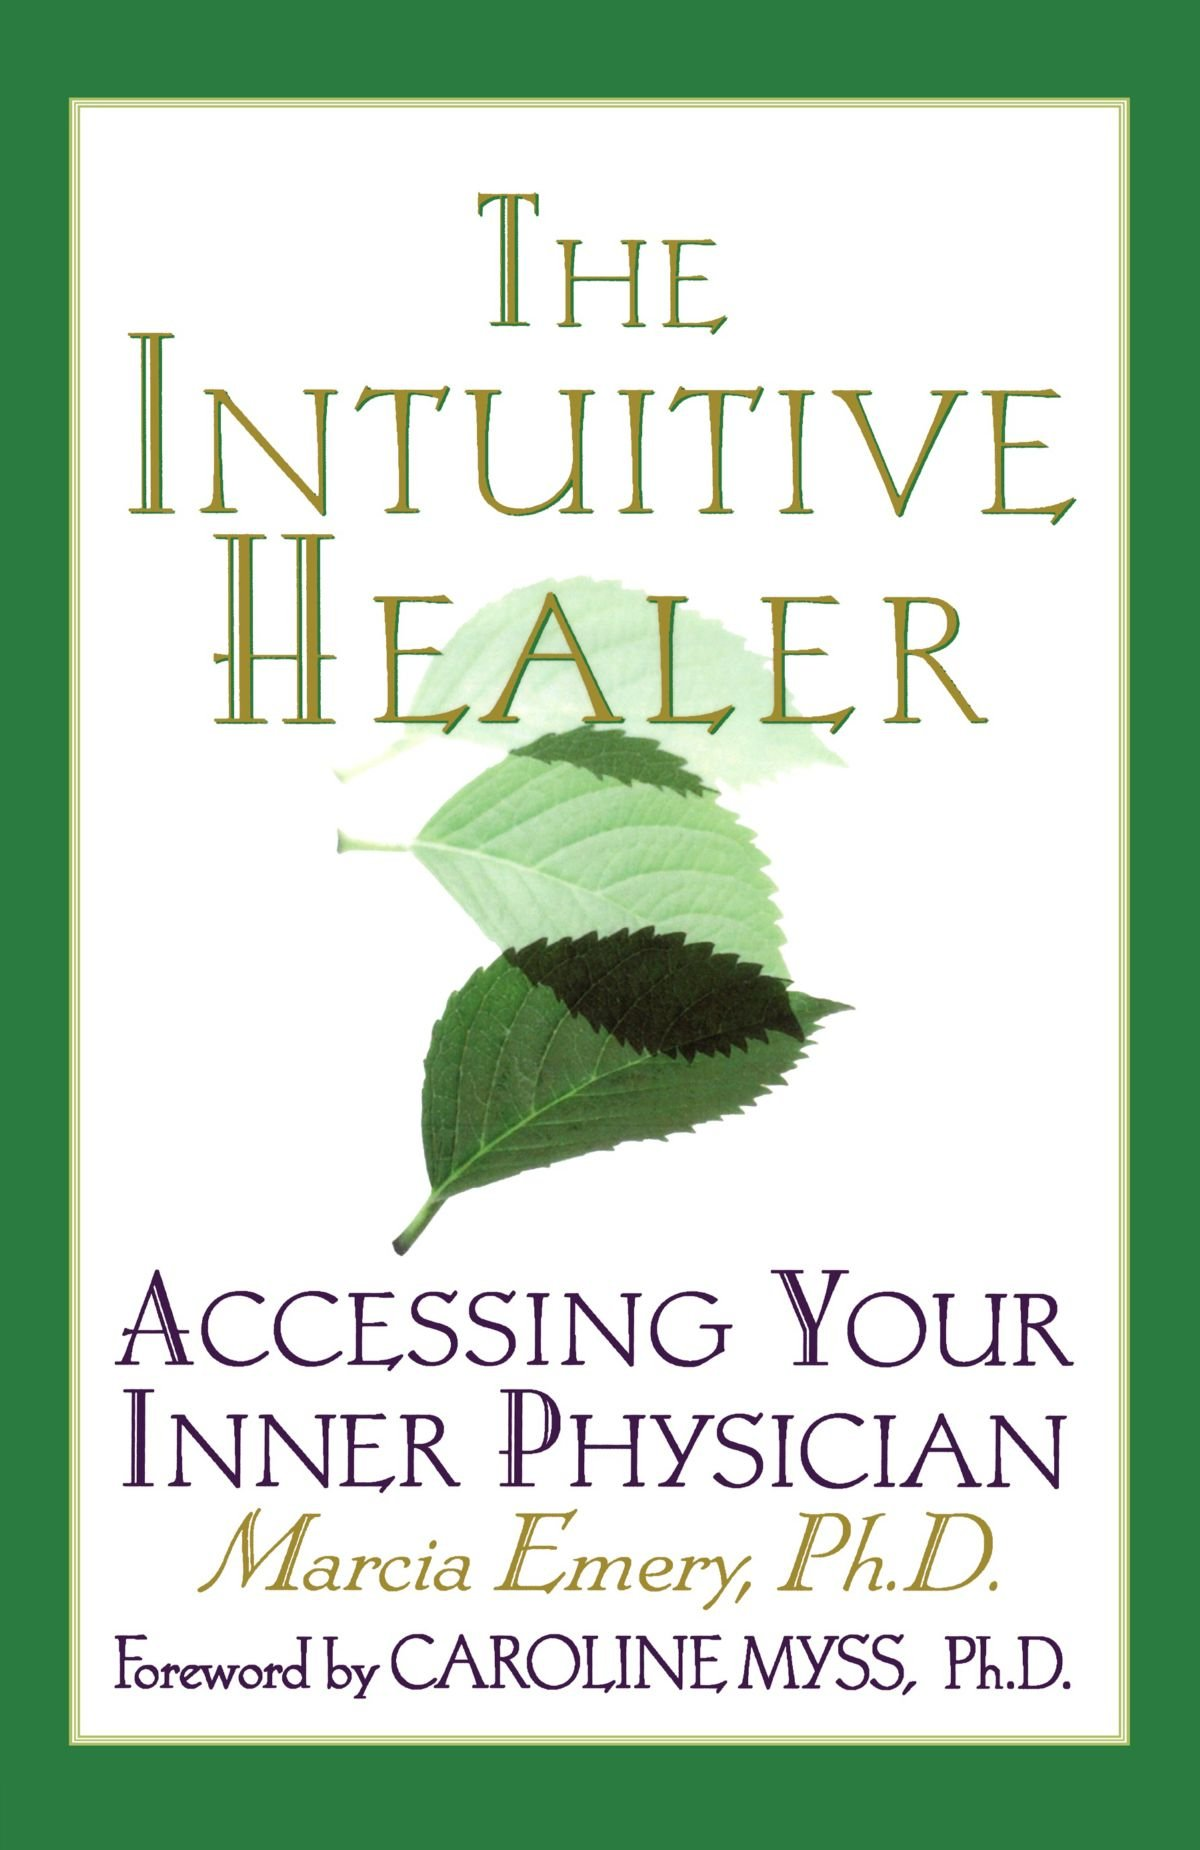 The Intuitive Healer: Accessing Your Inner Physician: Marcia Emery ...